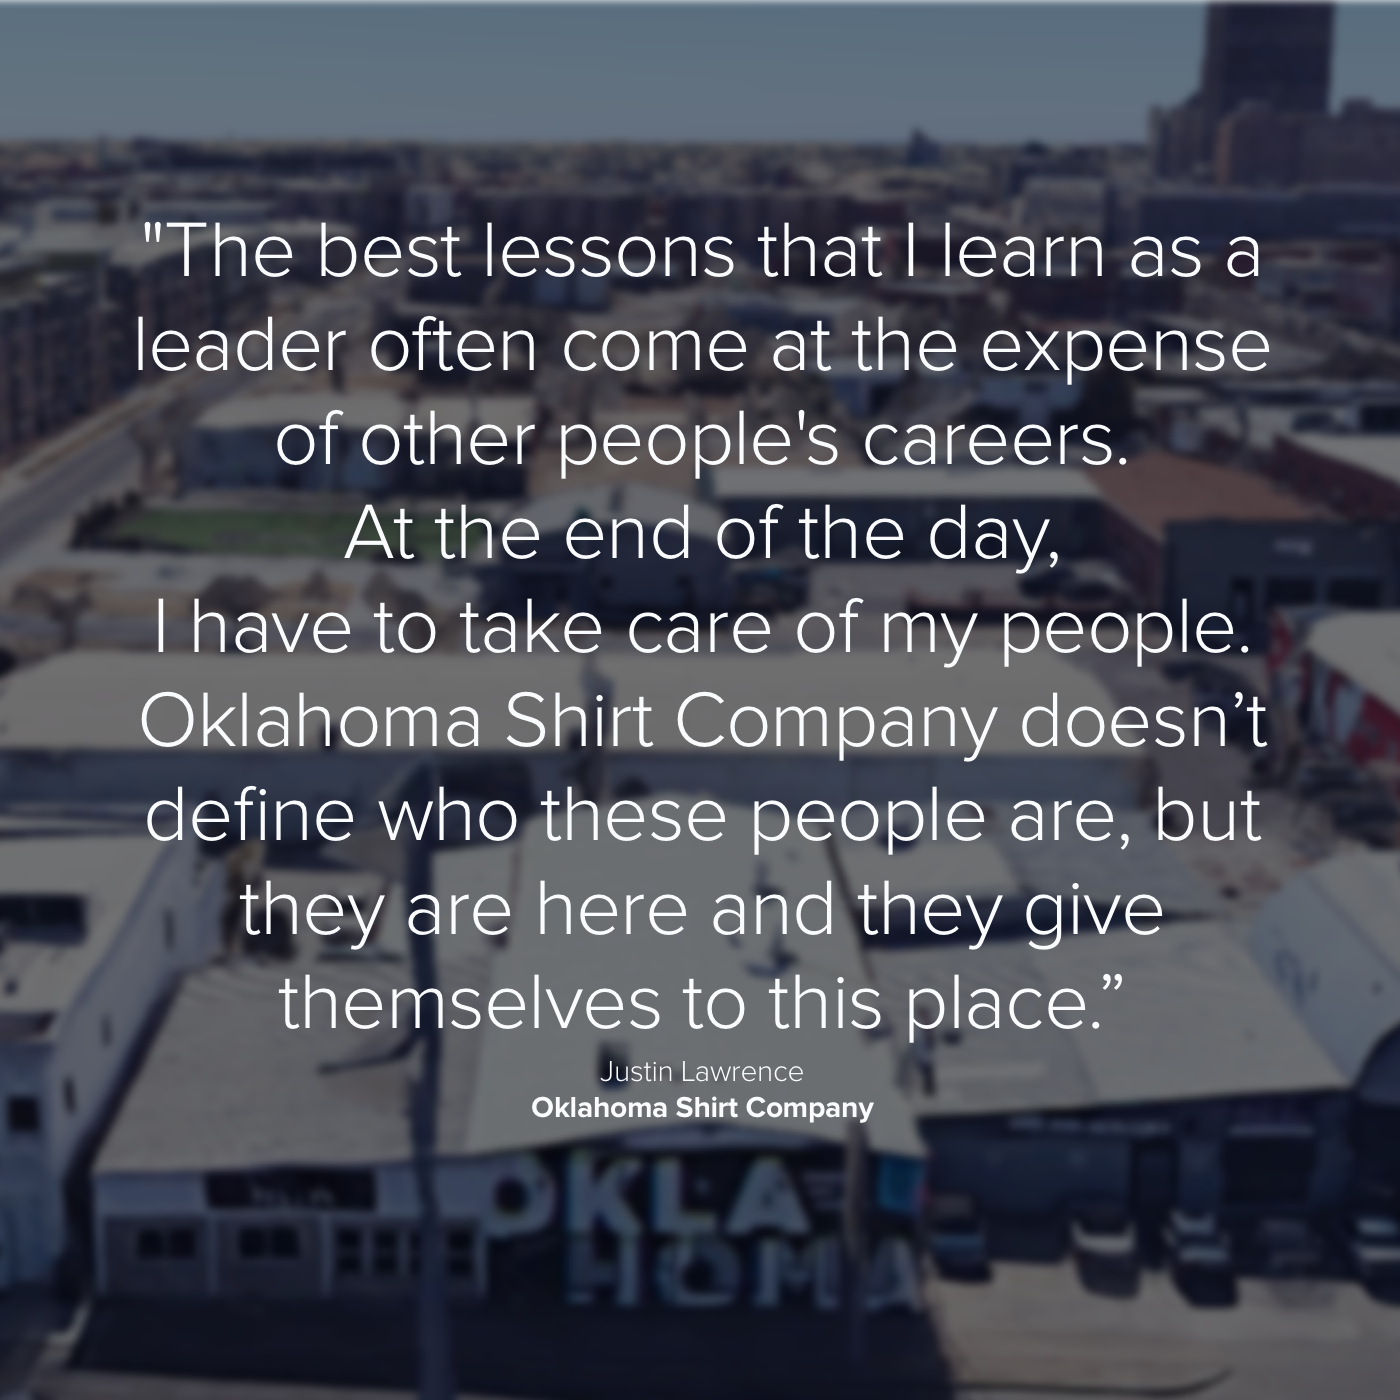 Lessons from employing people by Justin Lawrence of Oklahoma Shirt Company